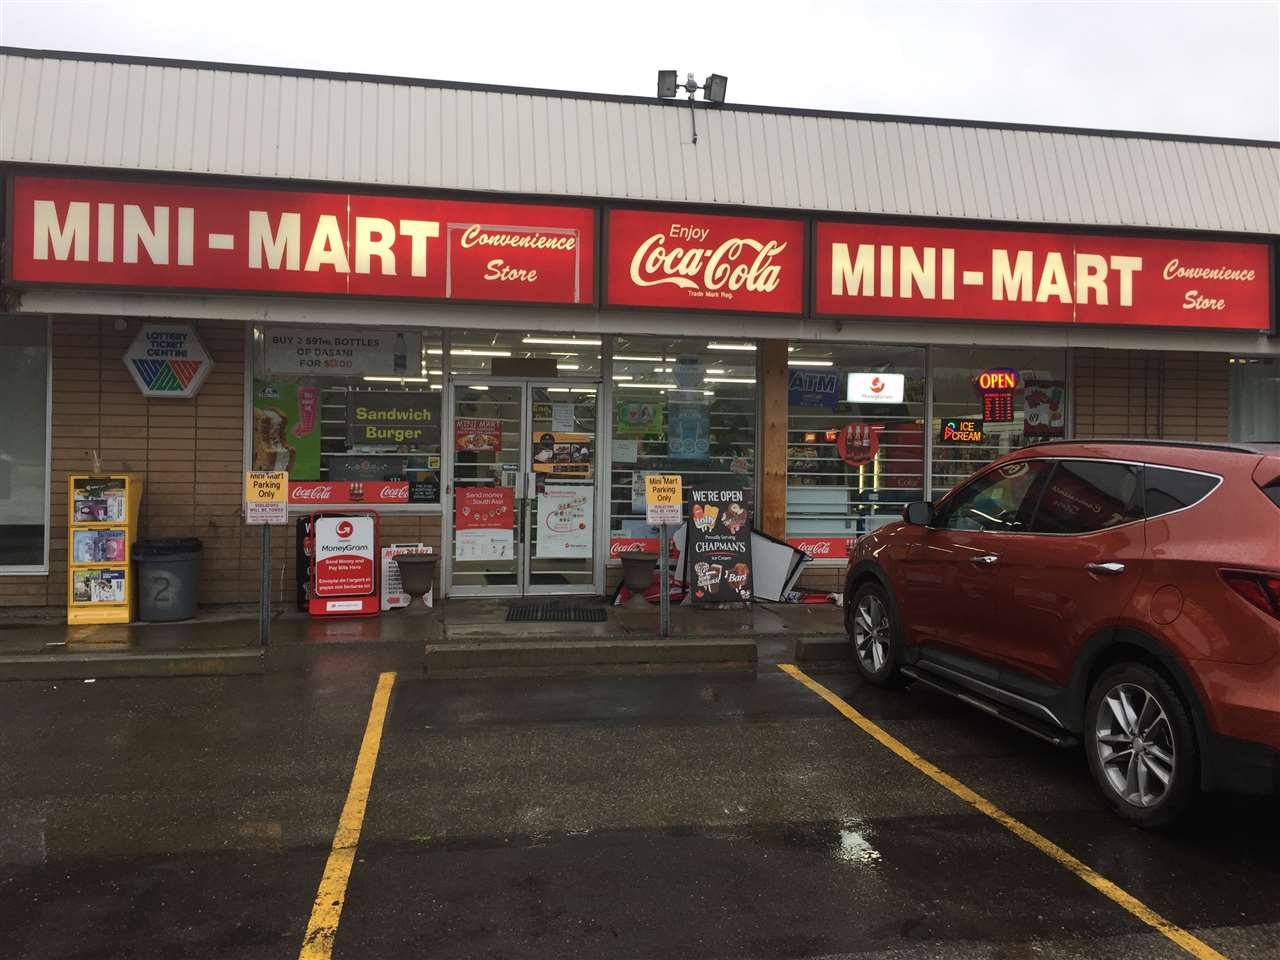 Large scale family operated mini-mart convenience store located in west boro community in Sherwood Park. The store has high exposure to 2 nearby schools (elementary & secondary school) and surrounded by residential area. Selling smokes, pop, grocery, ice cream, candy, slush, lotto & Radio Bingo lottery. Recently with ATM service the owner added Money Gram Service. This convenience store has a BIG parking lot. Lots of potential to expand the business from current annual sales of $860K. Total 2000 sq ft area including common area with very low rent of $3332/month. Current remaining lease is 3 years with additional 5 year renew option. Store hours Monday - Friday 8:00am to 8:00pm, Saturday & Sunday 9:00am to 7:00pm. Don't miss this golden opportunity for owning your own business.